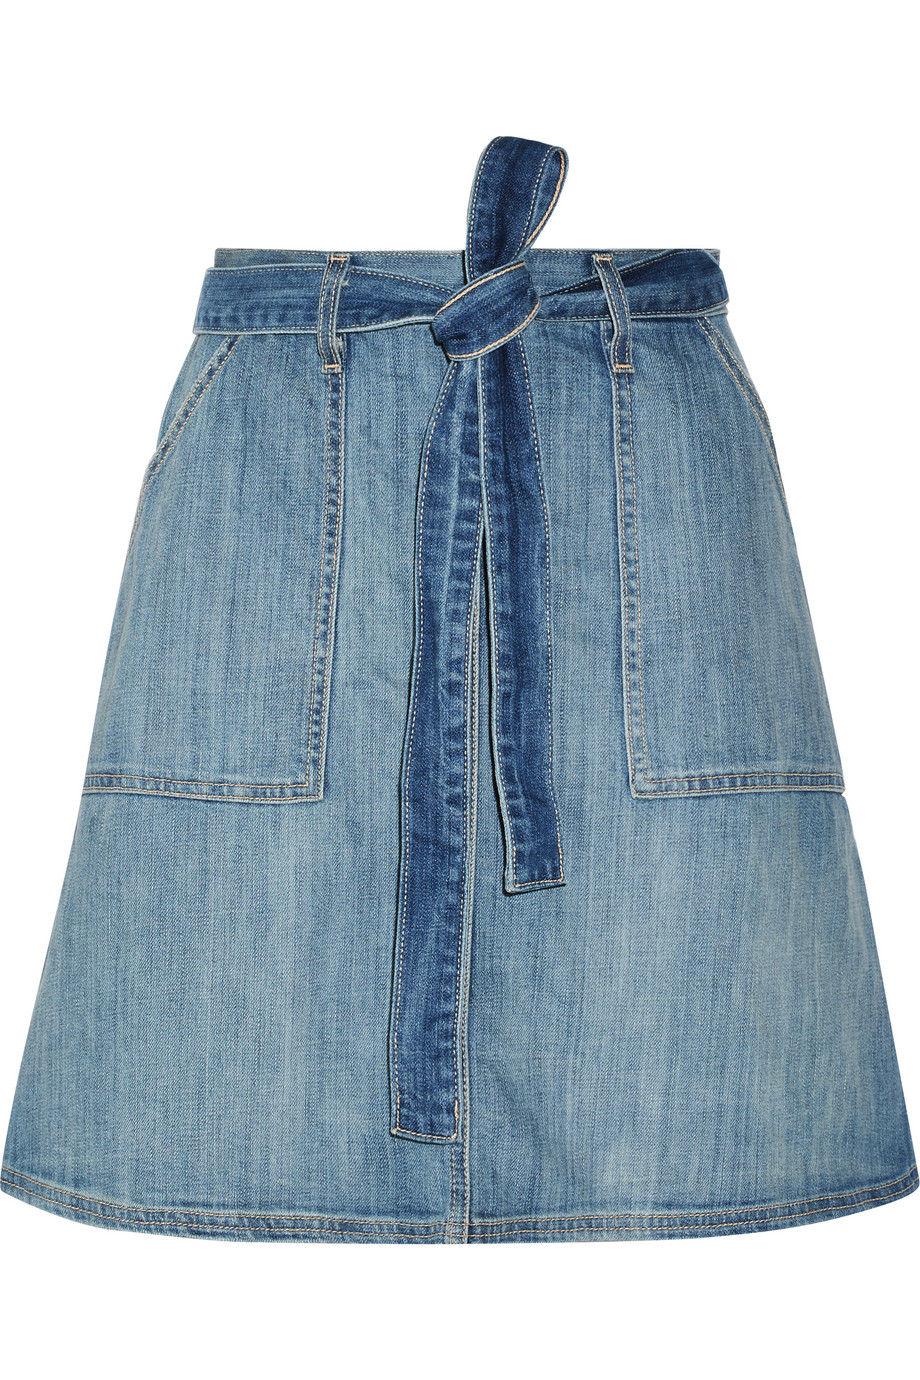 Current/Elliott The Wrap Stretch-Denim Skirt, Mid Denim, Women's, Size: 0